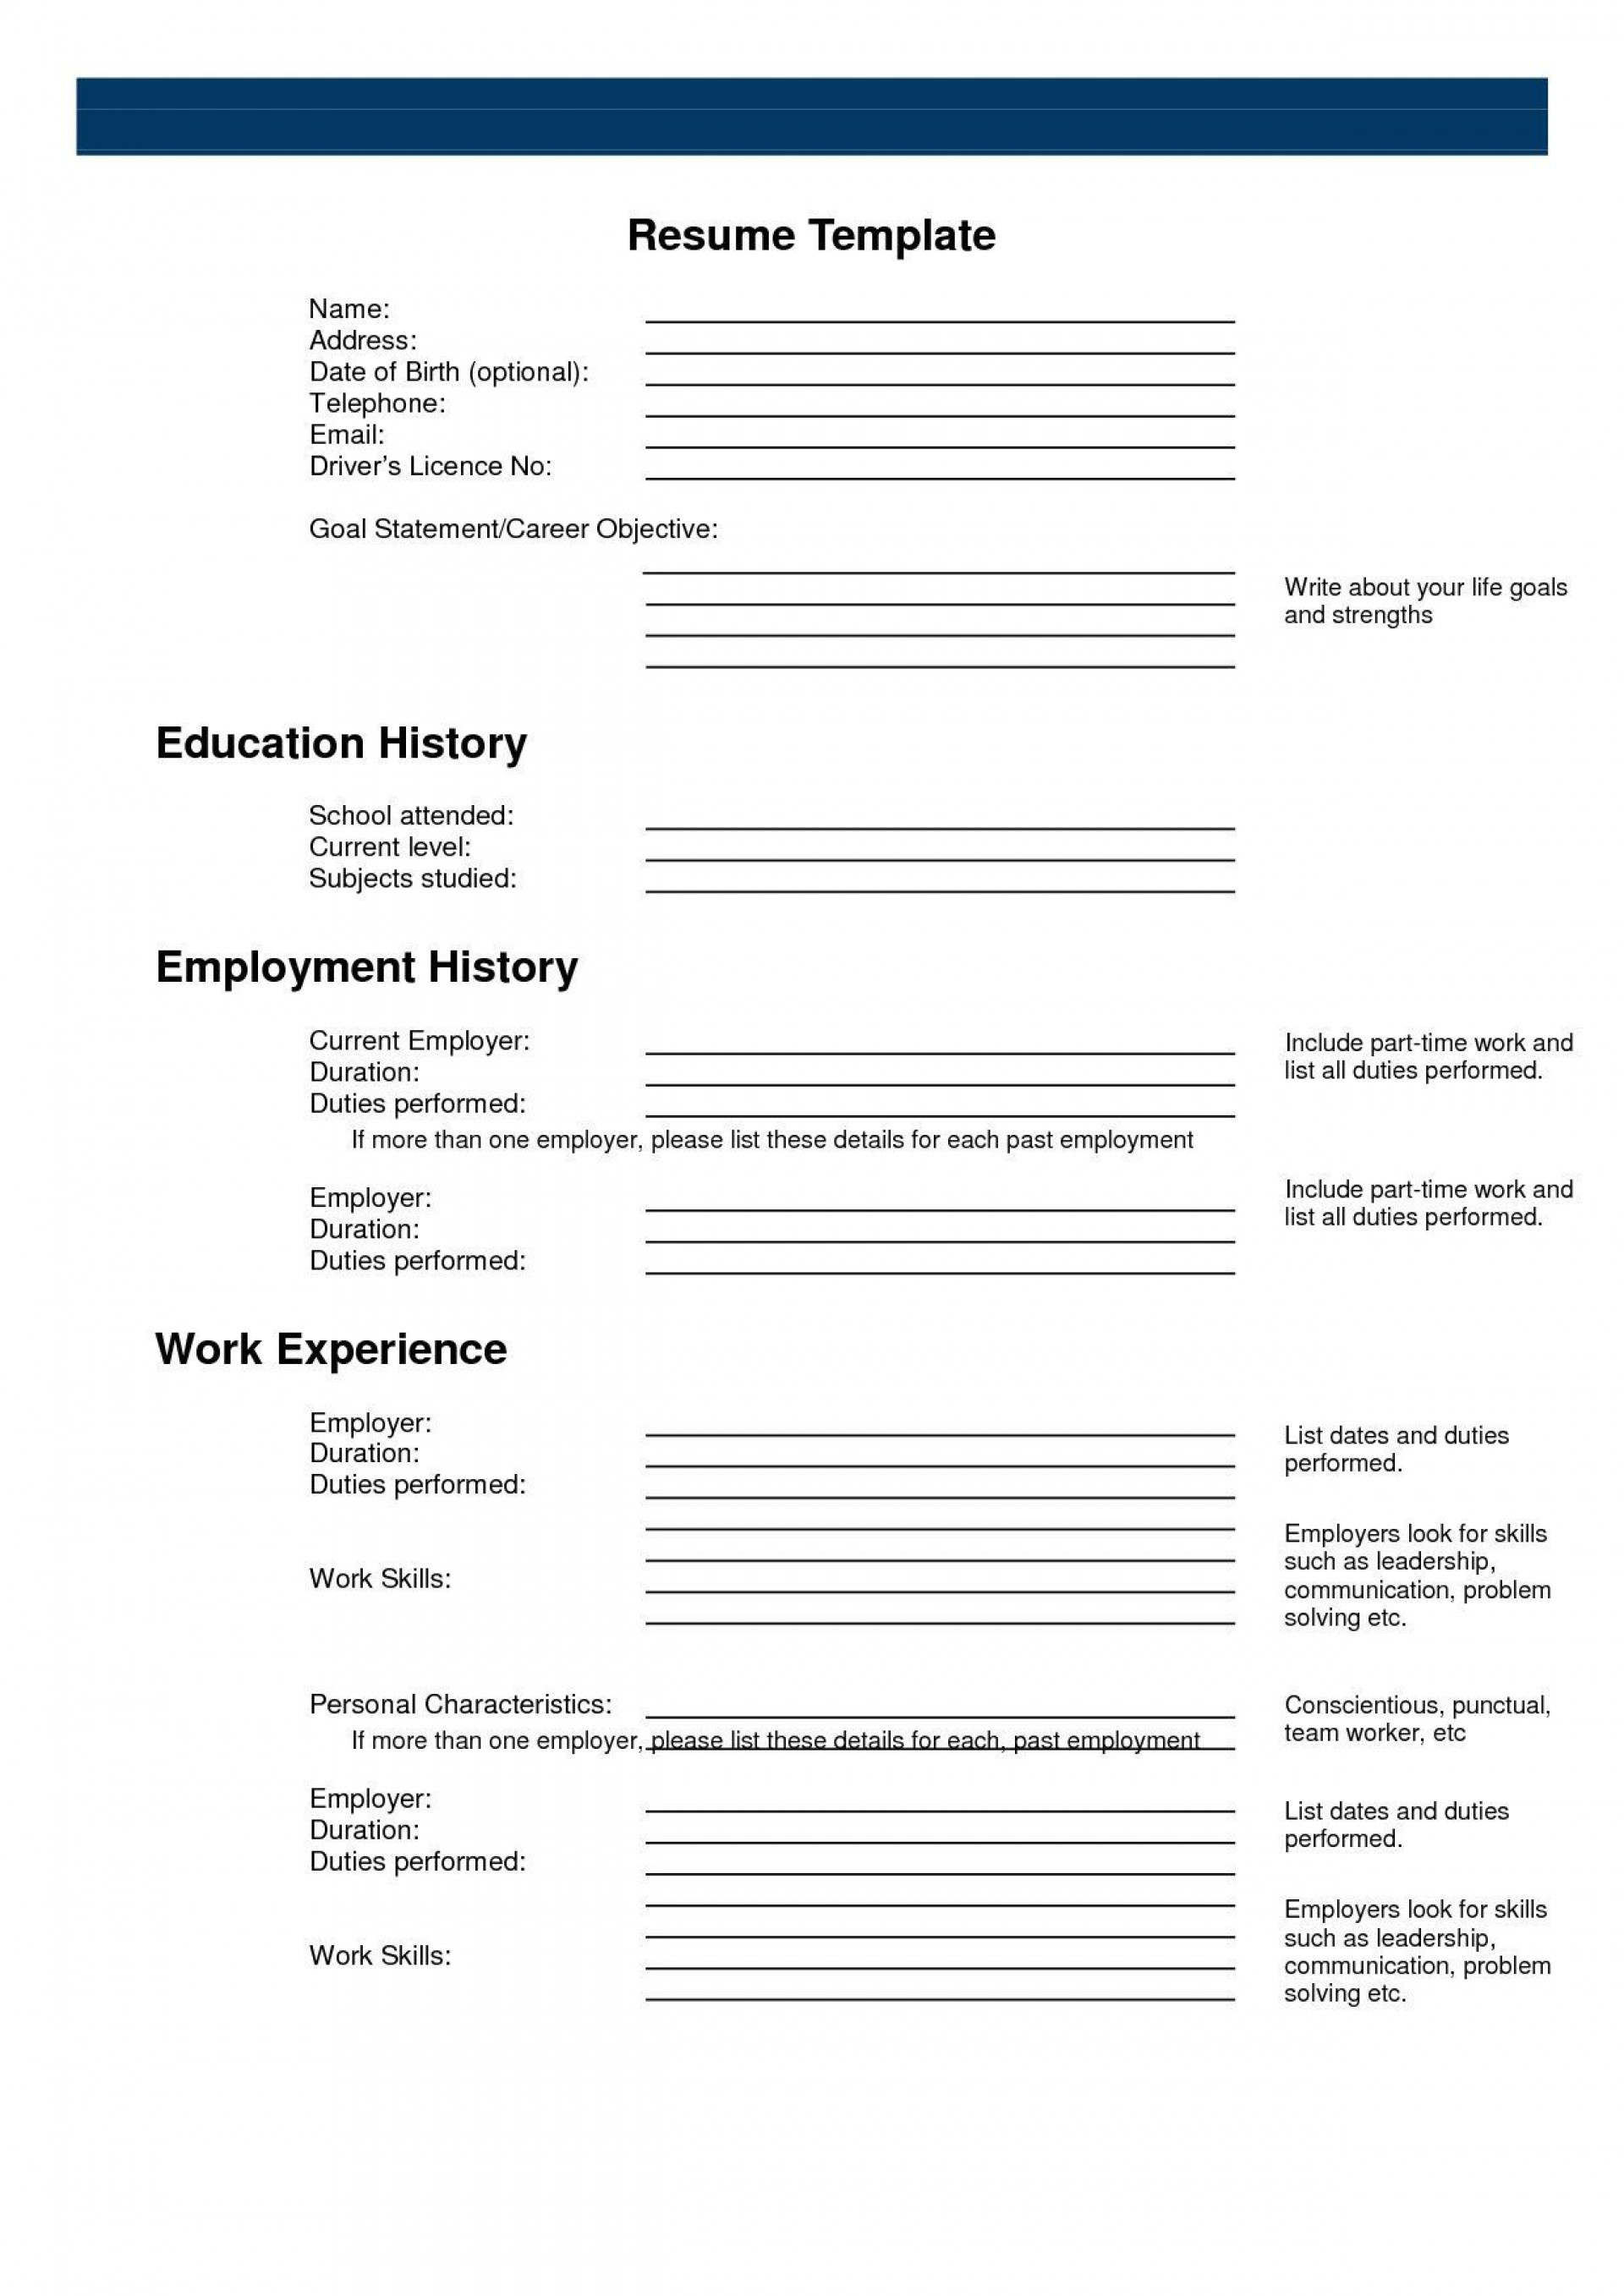 003 Striking Resume Template Free Printable Concept  Online Word1920